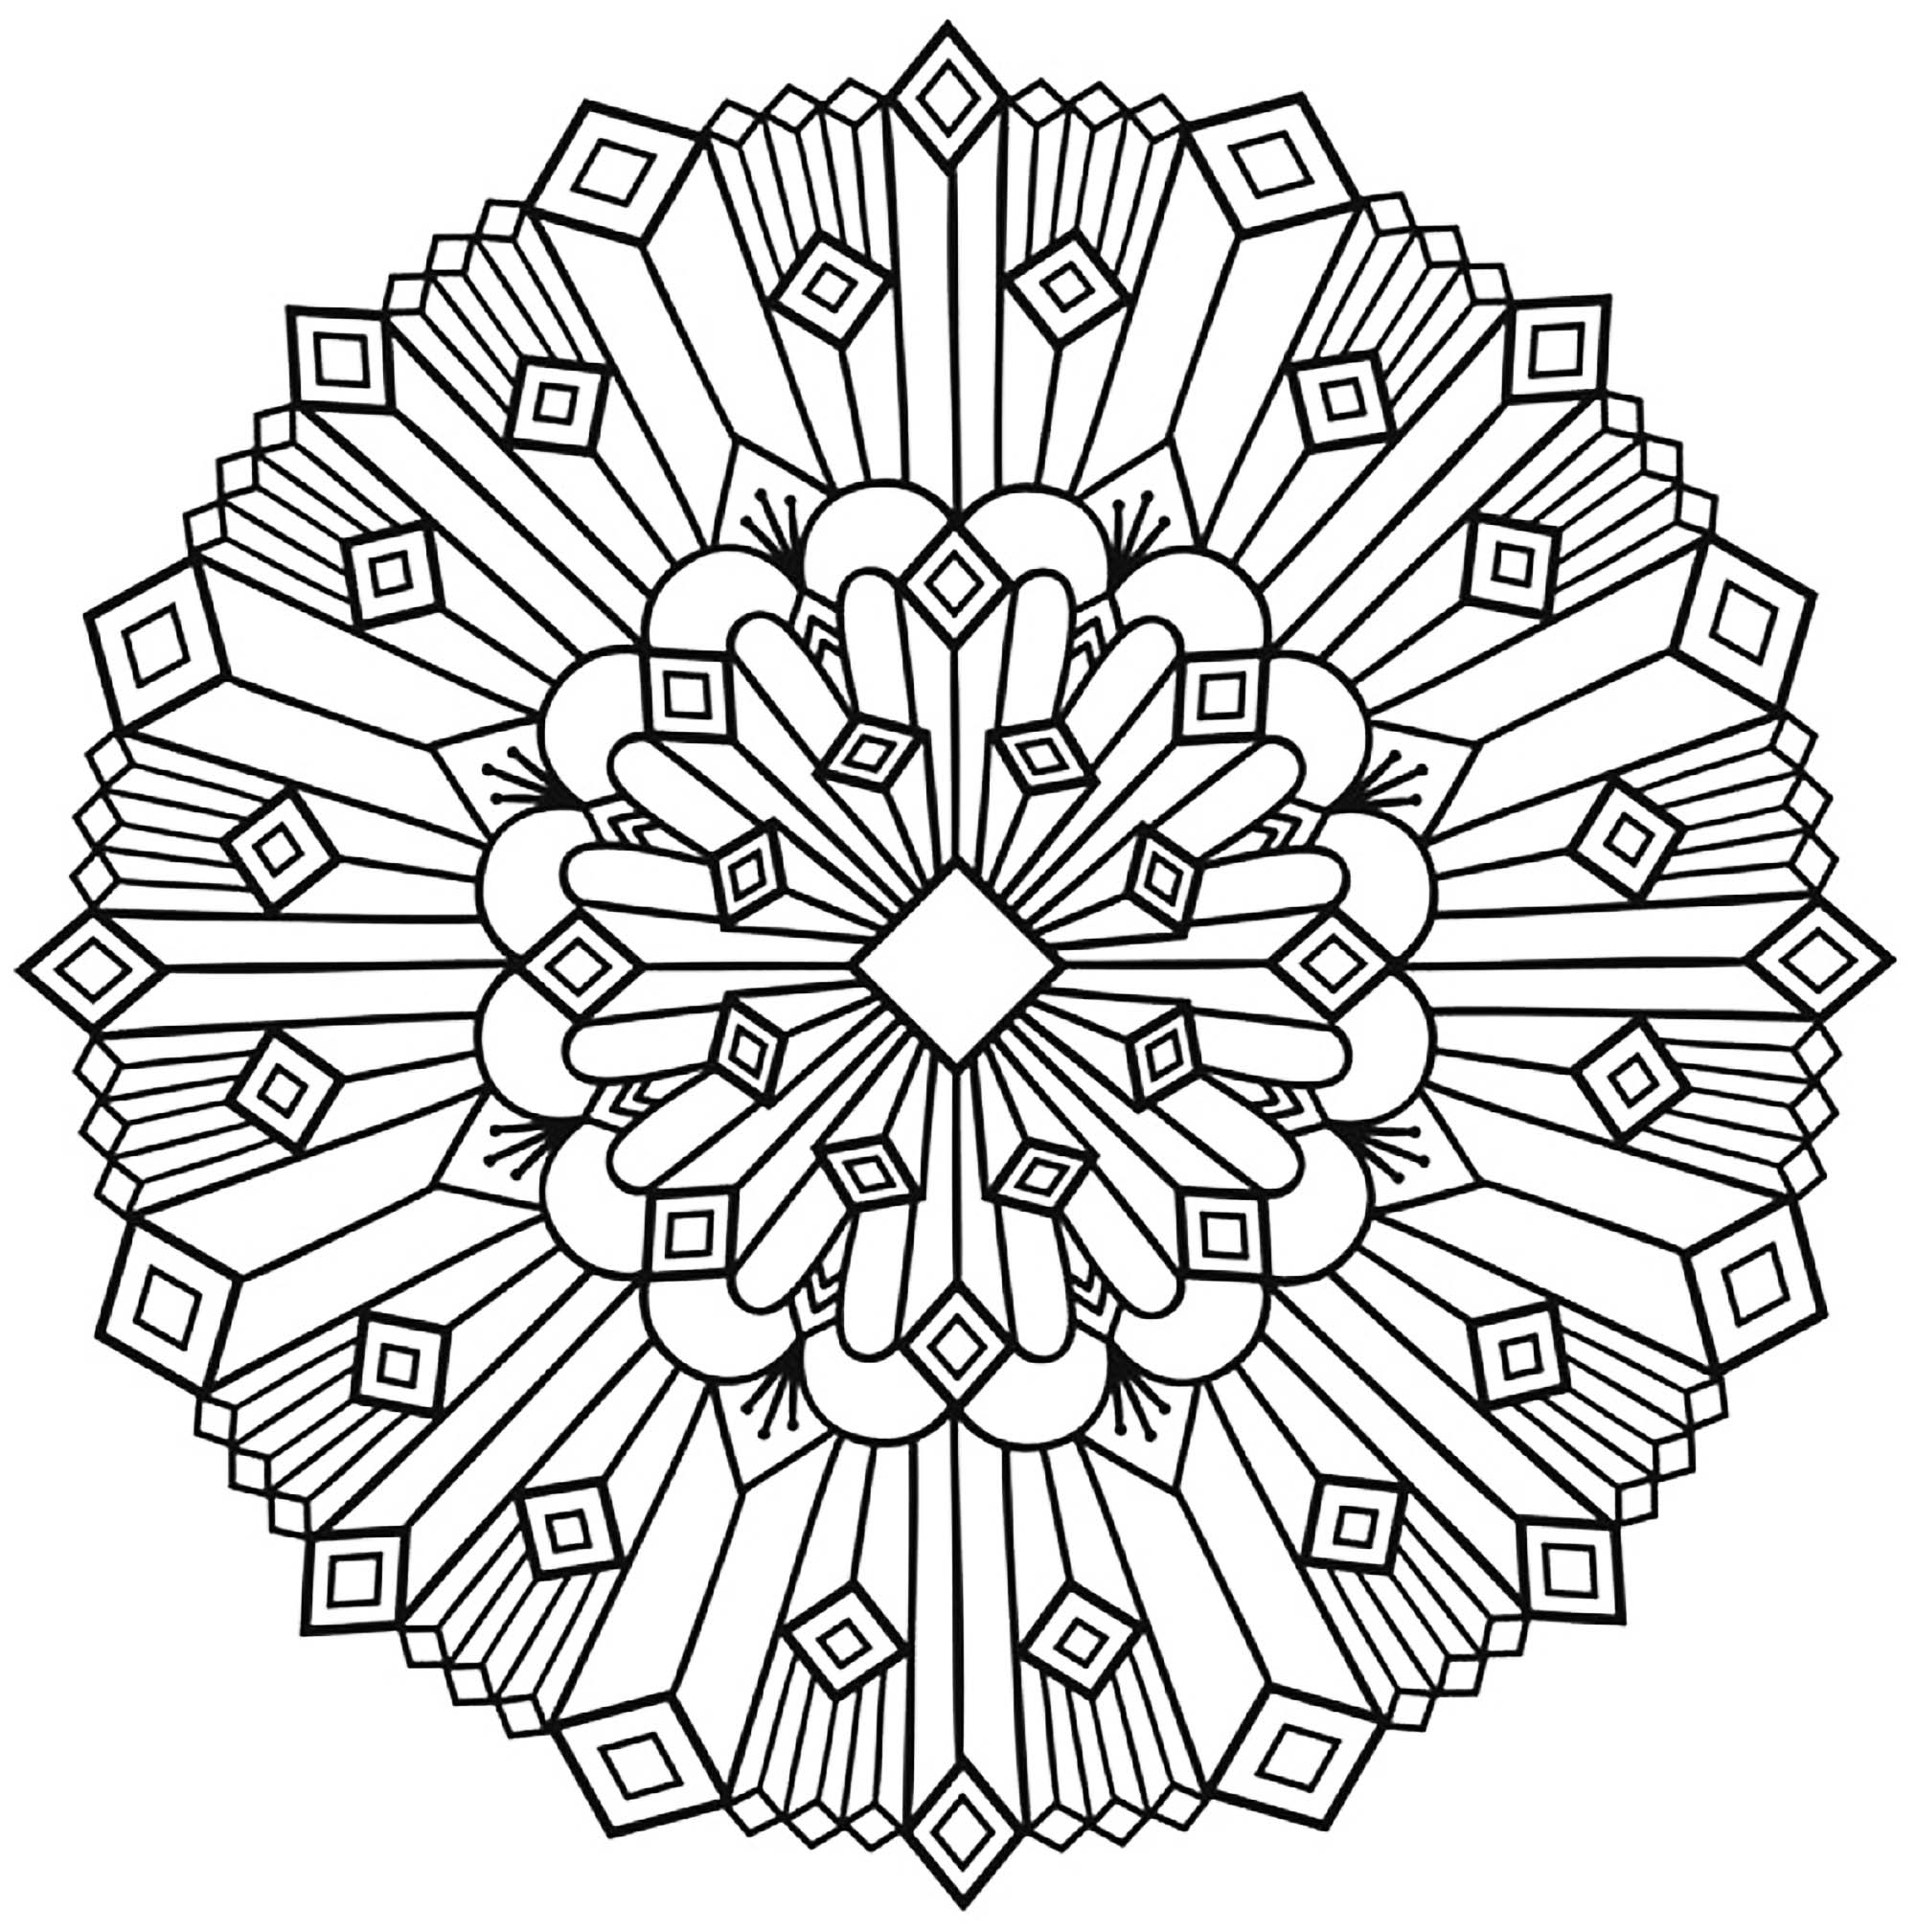 Mandala art deco simple mandalas coloriages difficiles - Coloriage art ...